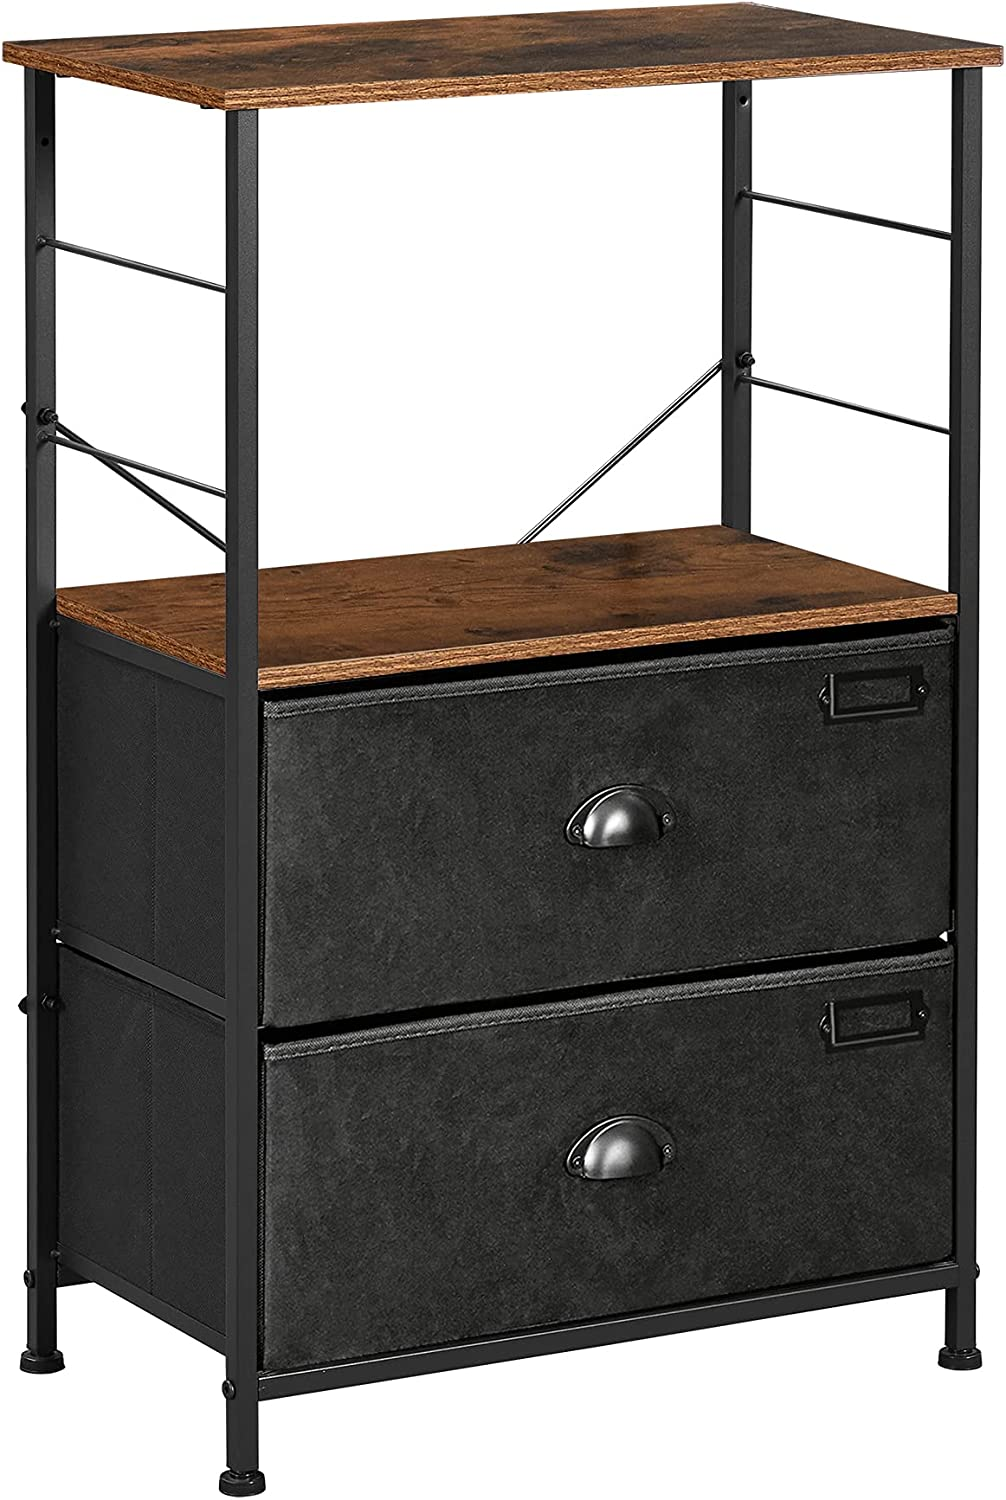 SONGMICS Nightstand Industrial Bedside Our shop OFFers the best service Fees free!! Table 2 Draw Fabric with